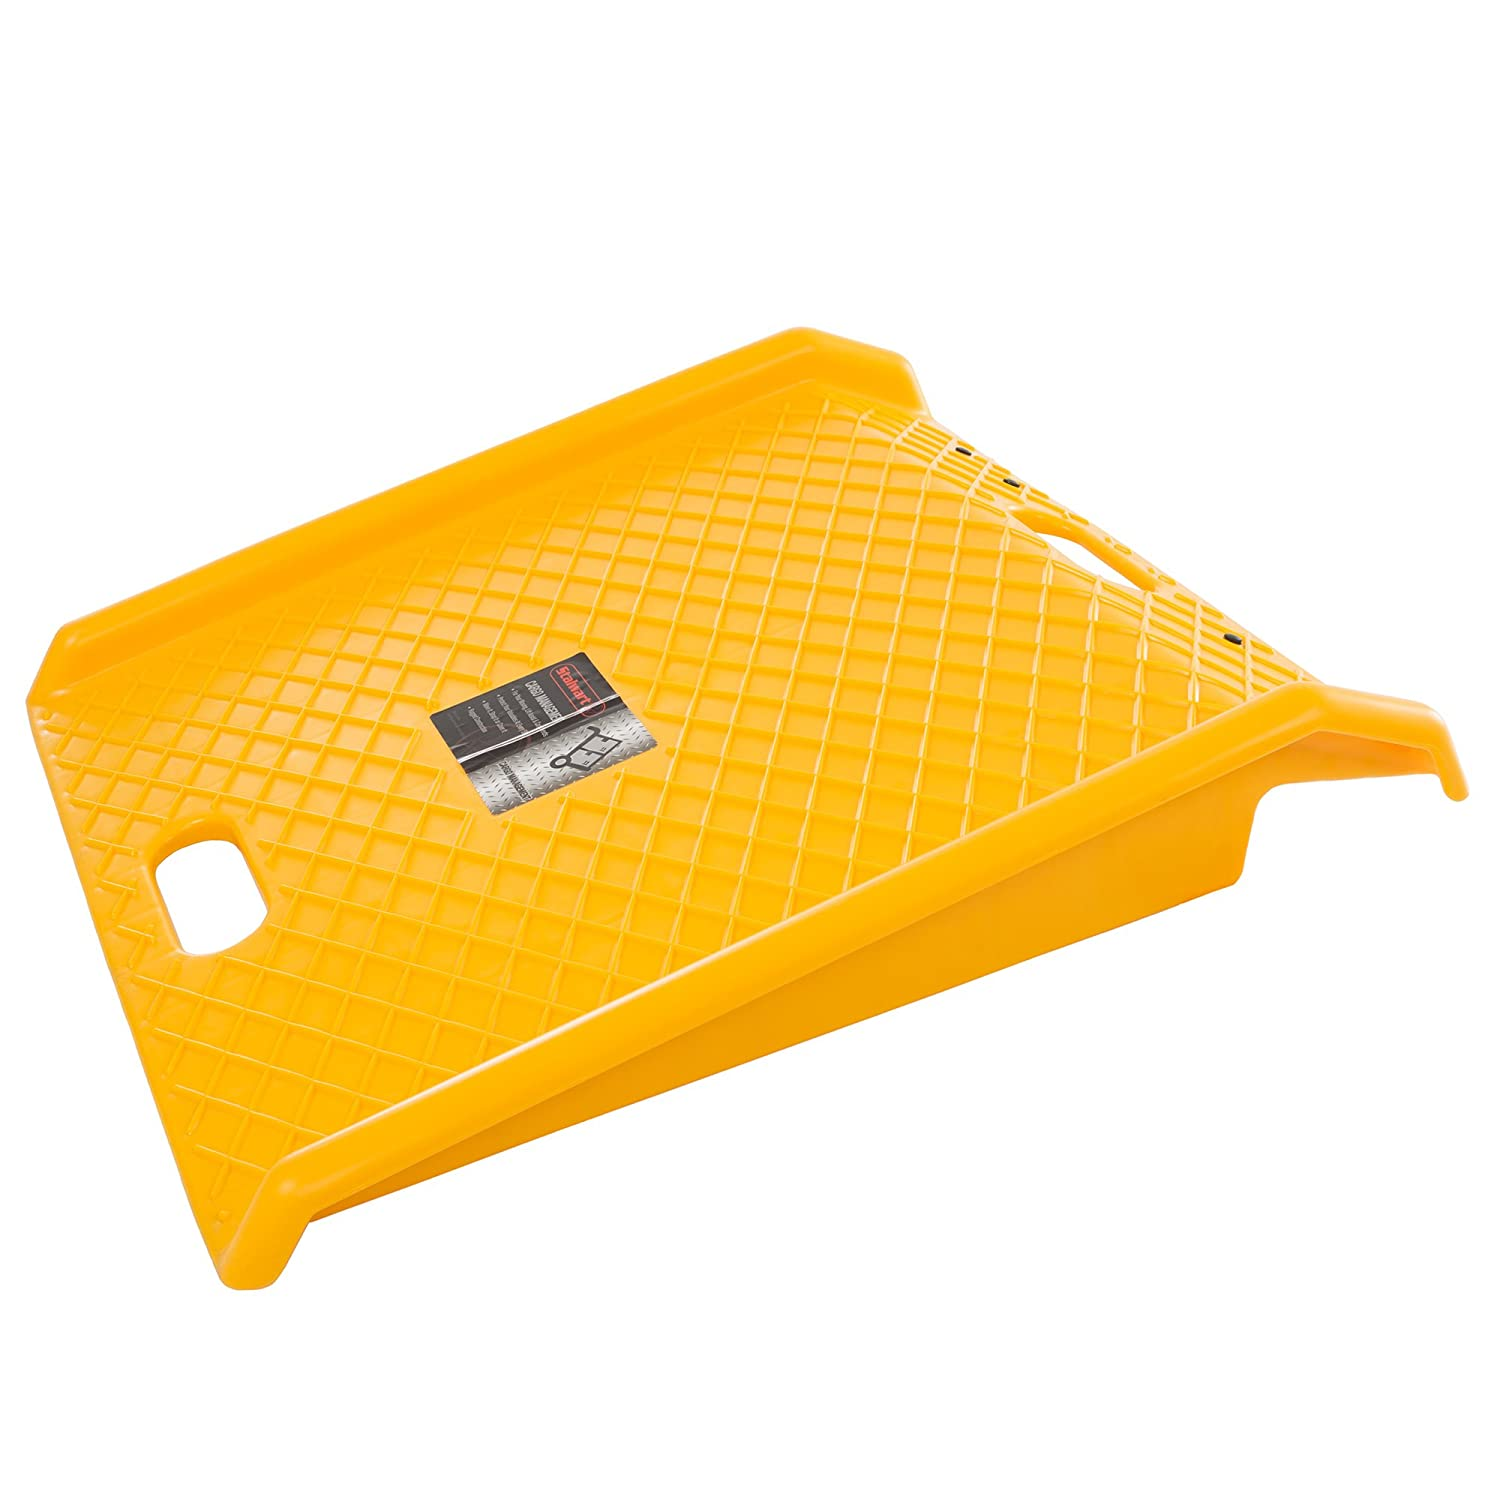 Stalwart Curb Ramp, Portable Poly Ramp With 1000lbs Weight Capacity (For Delivery, Hand Truck, Carts, Wheelchairs, Walkers) (Yellow)